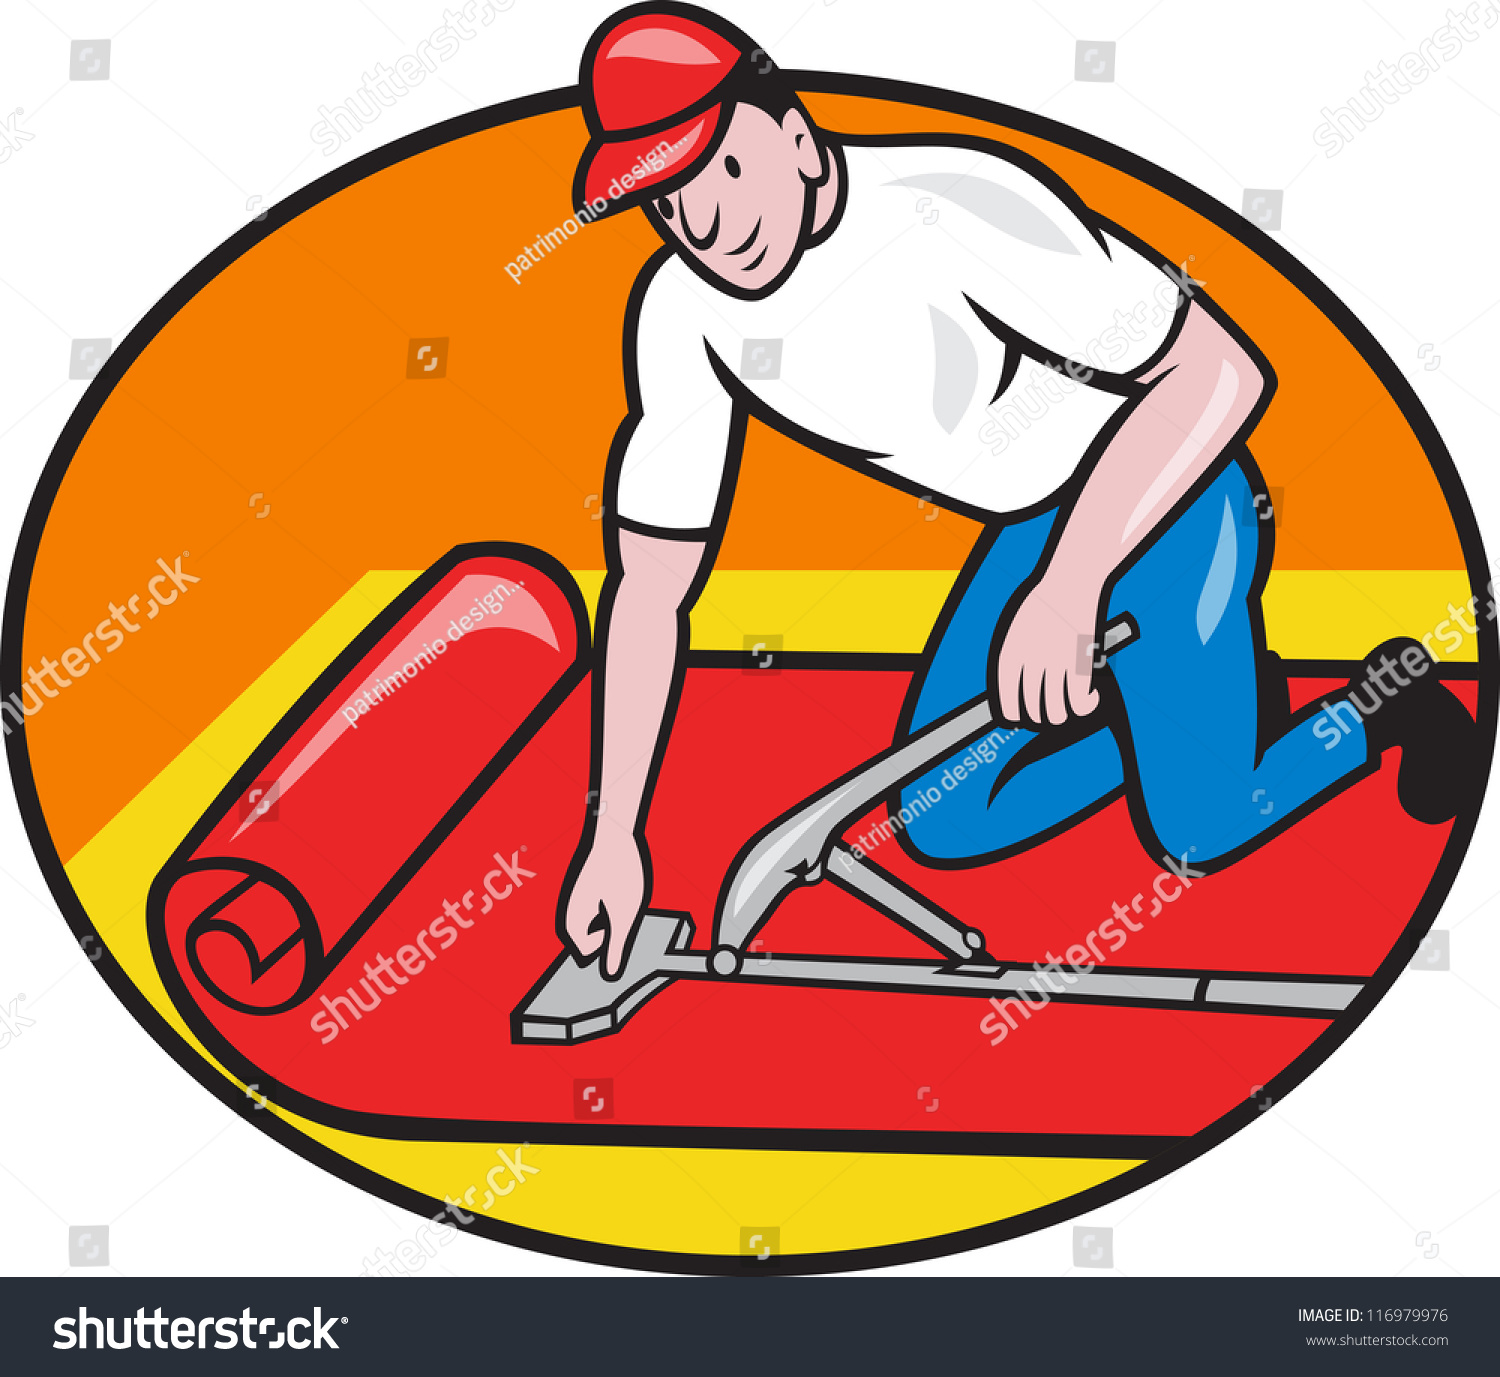 Illustration carpet layer fitter laying down stock for Cartoon carpet